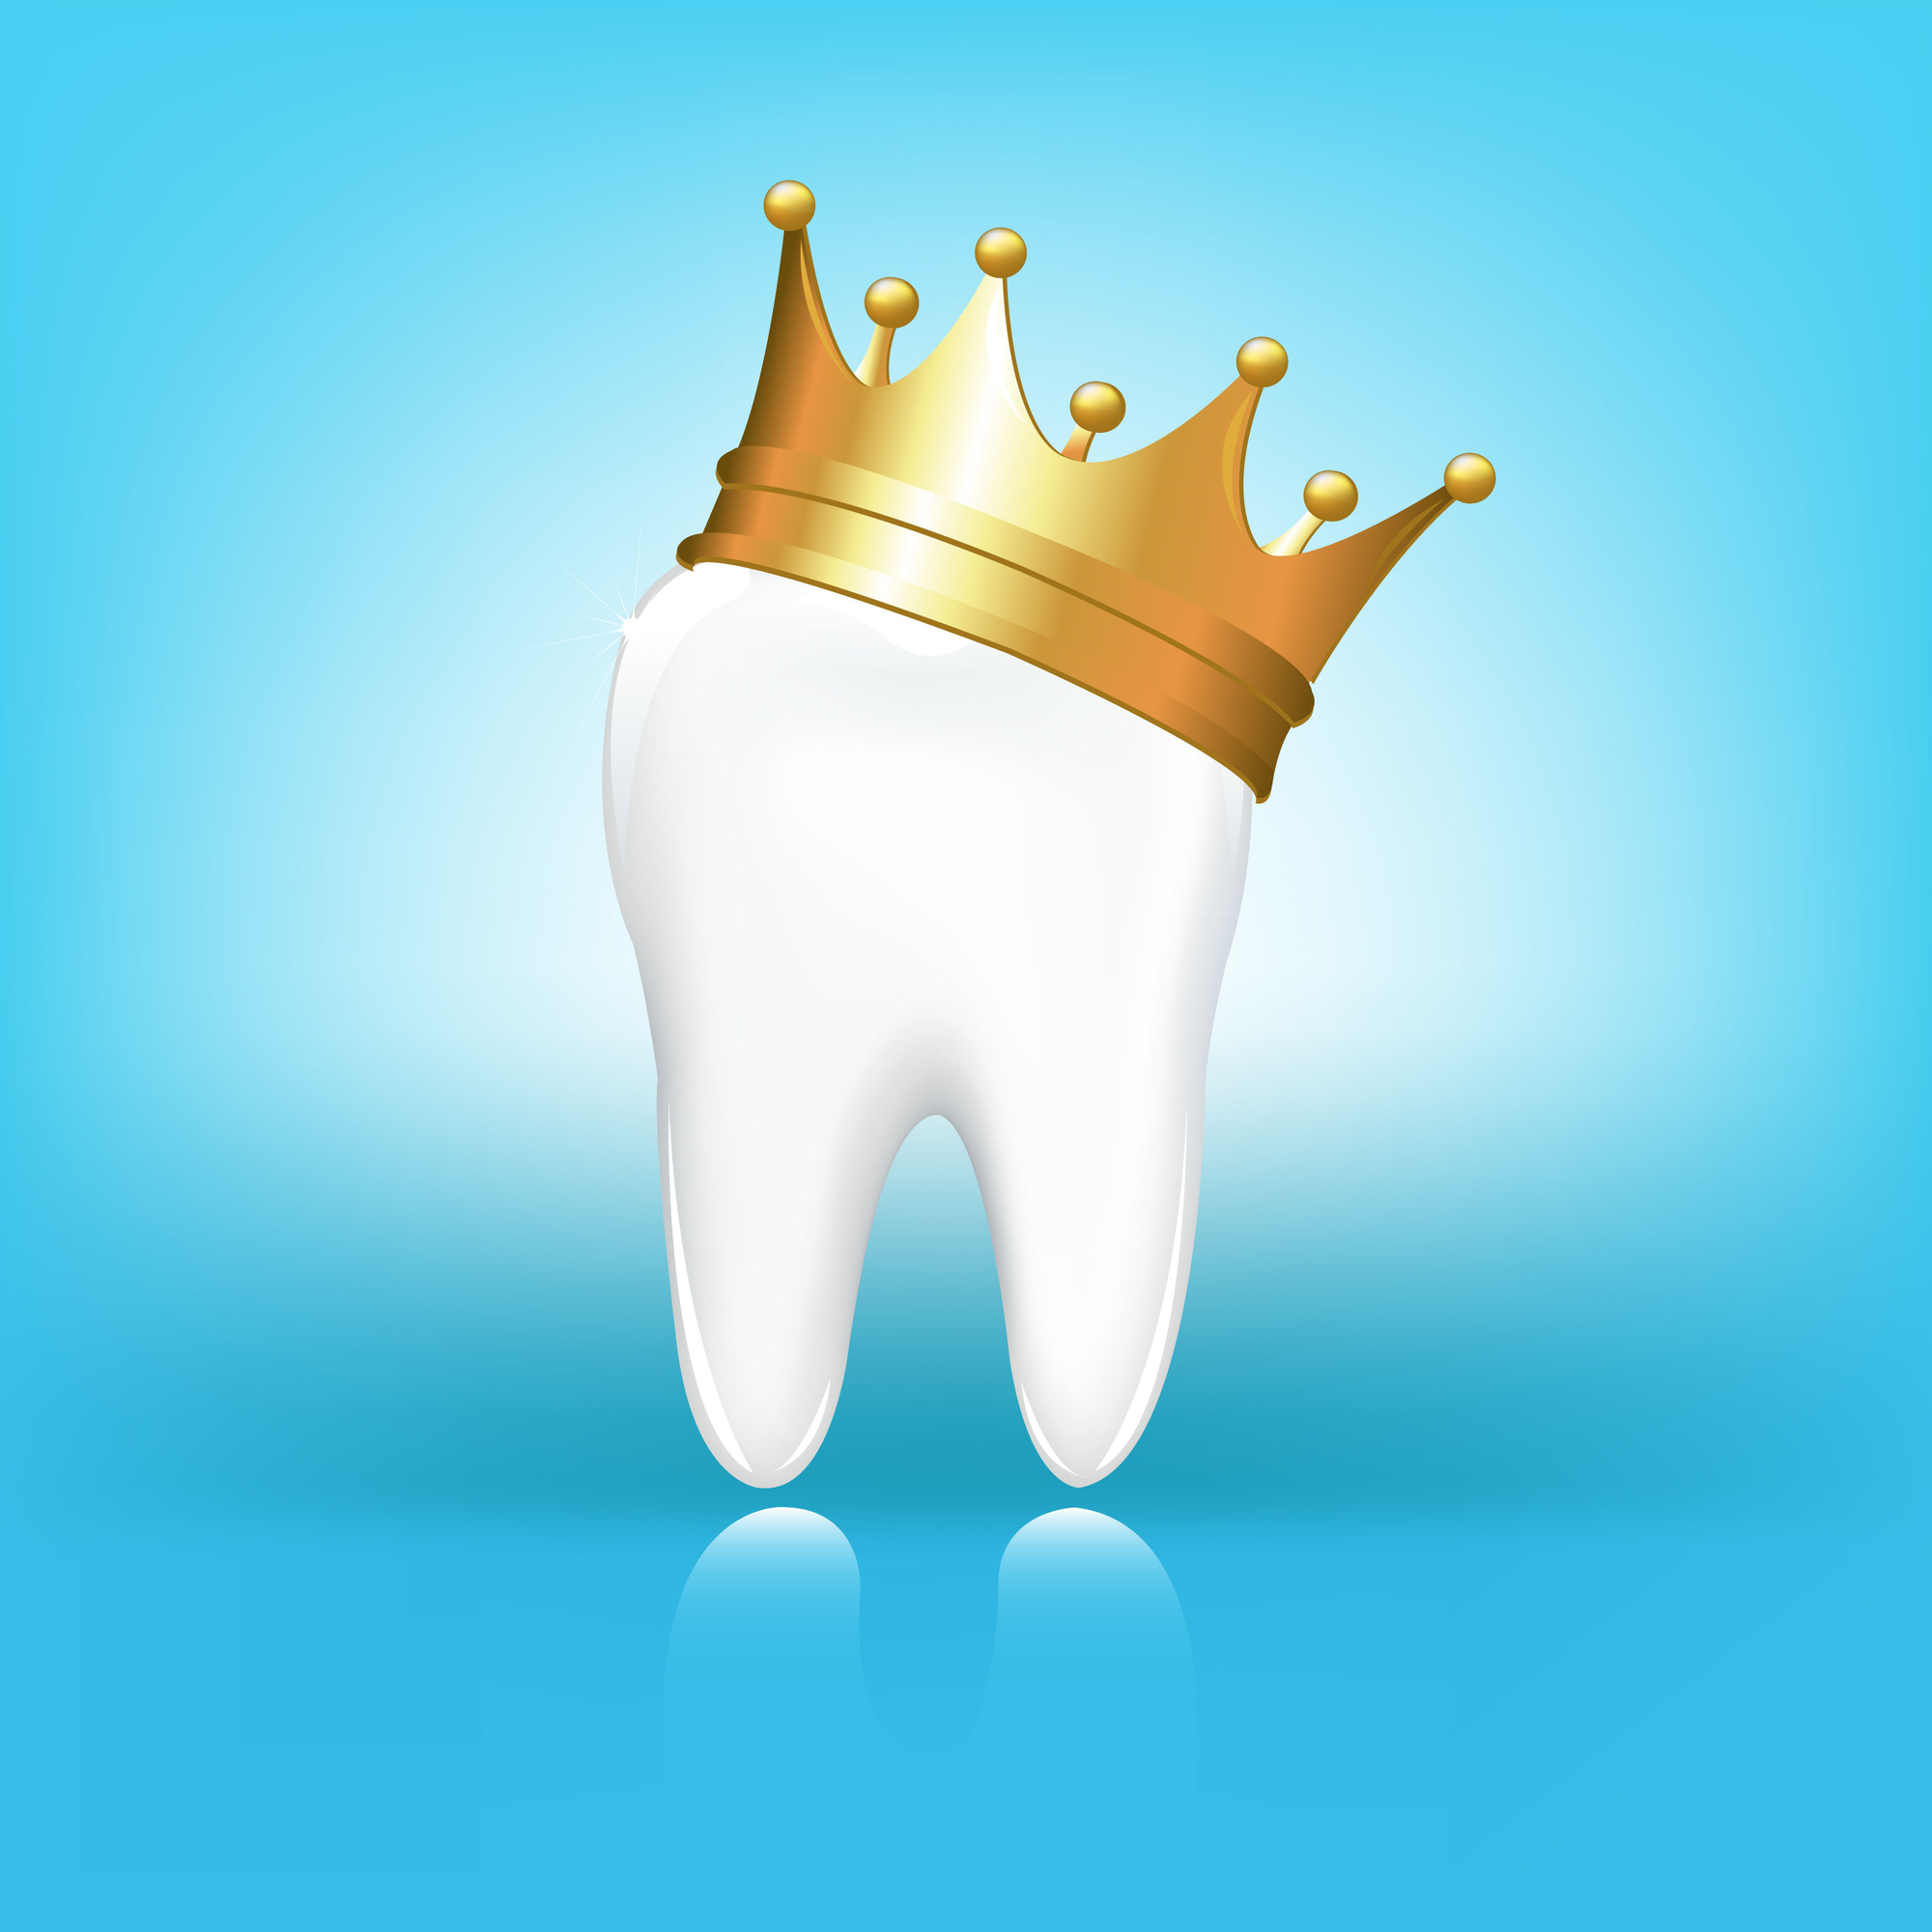 tooth crown with a gold crown on top on blue background